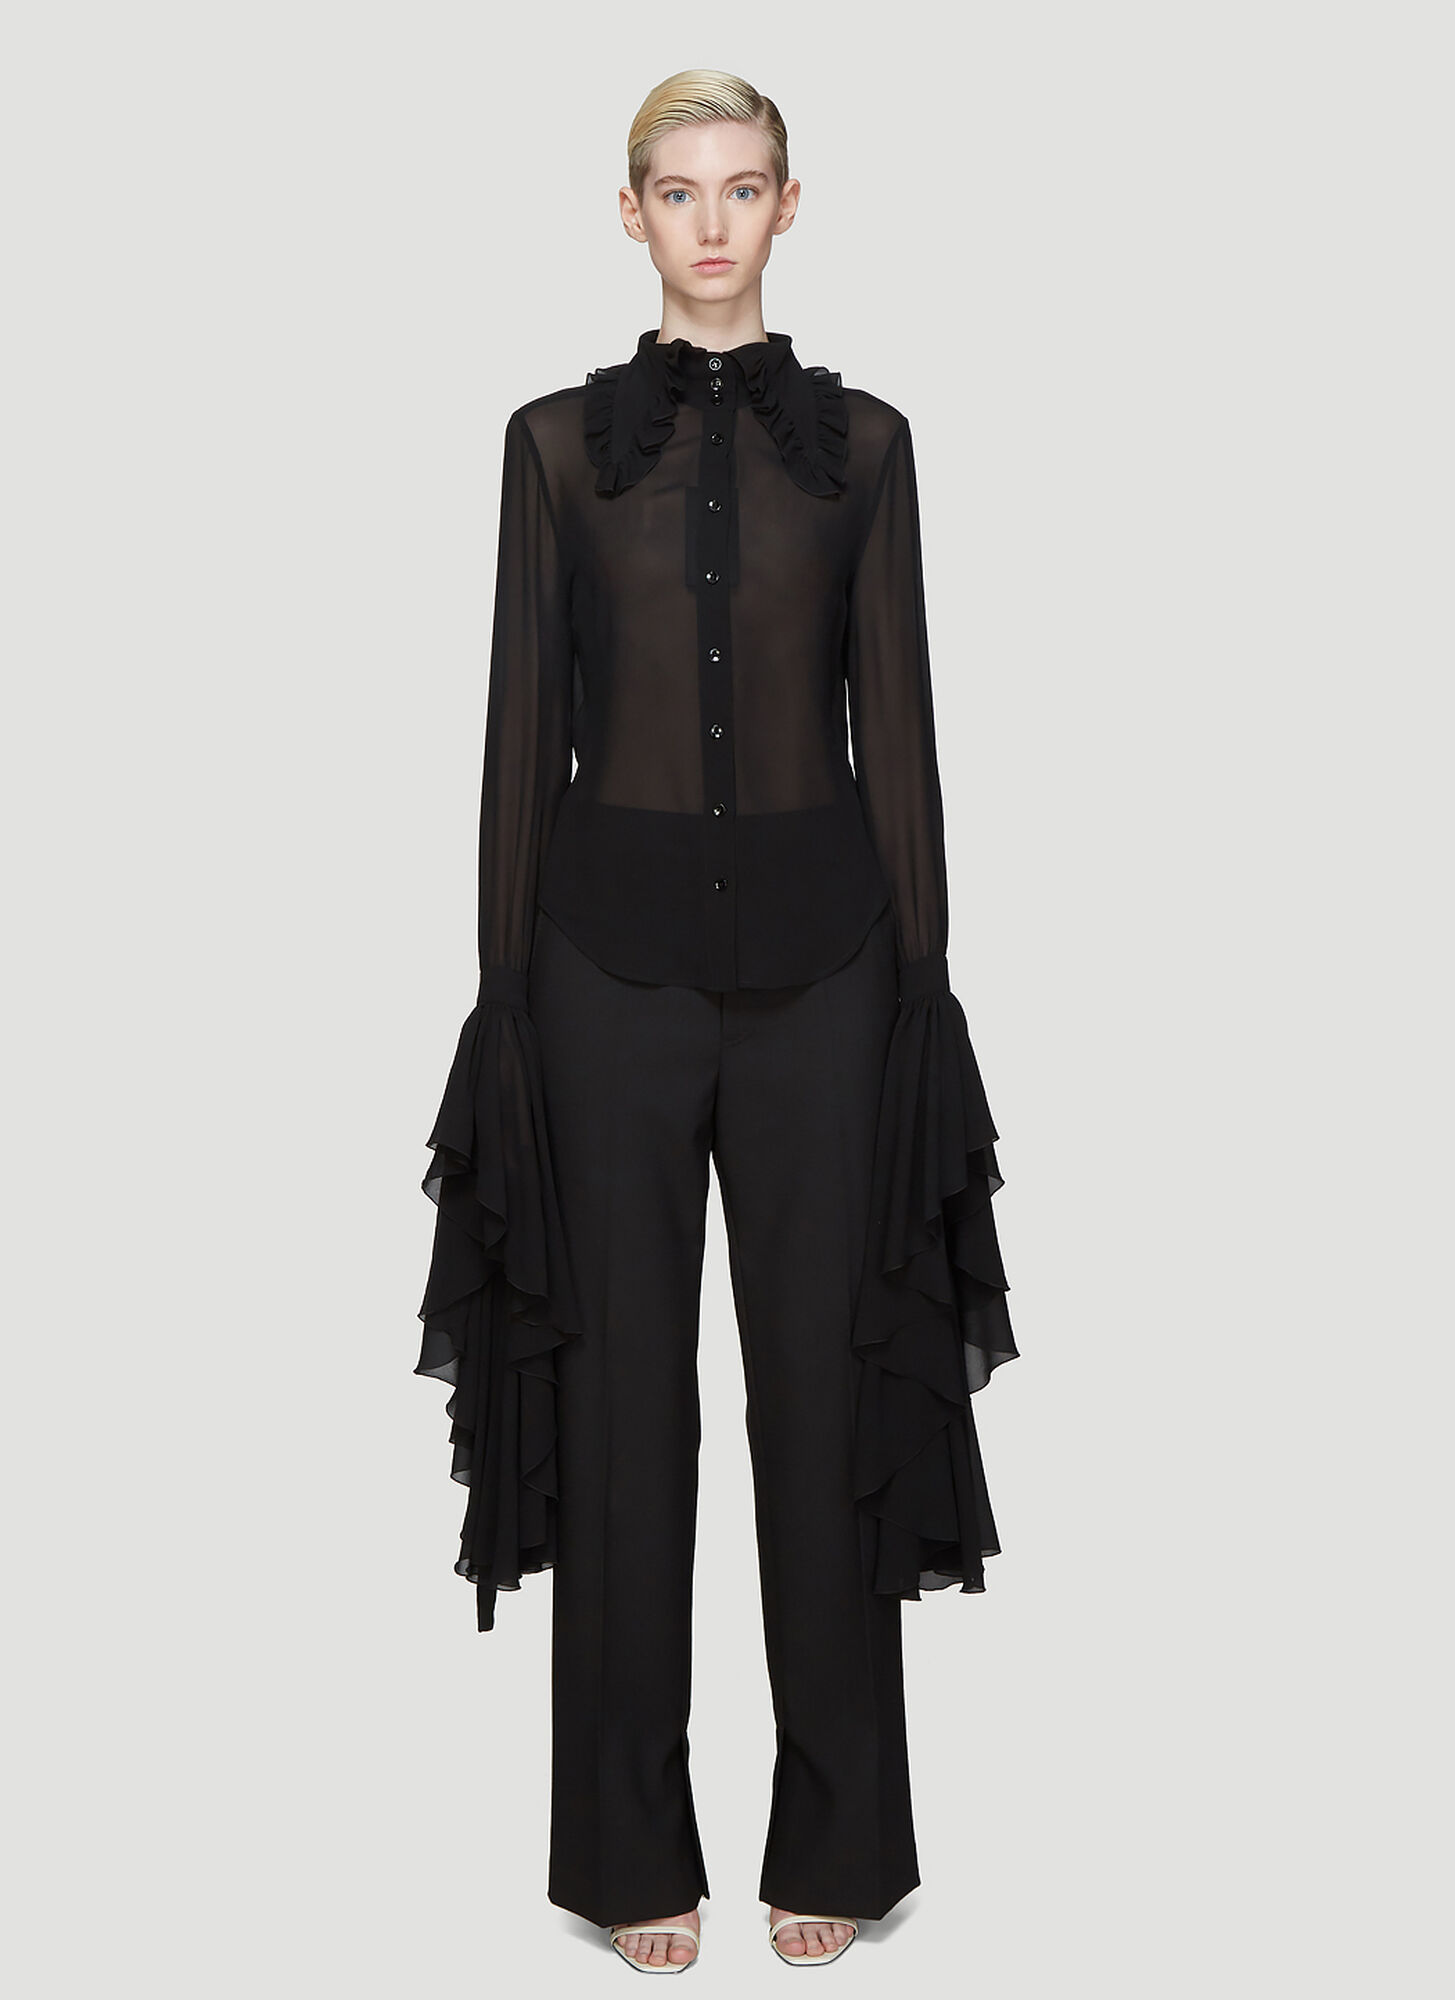 Saint Laurent Bell Sleeve Ruffle Collar Shirt in Black